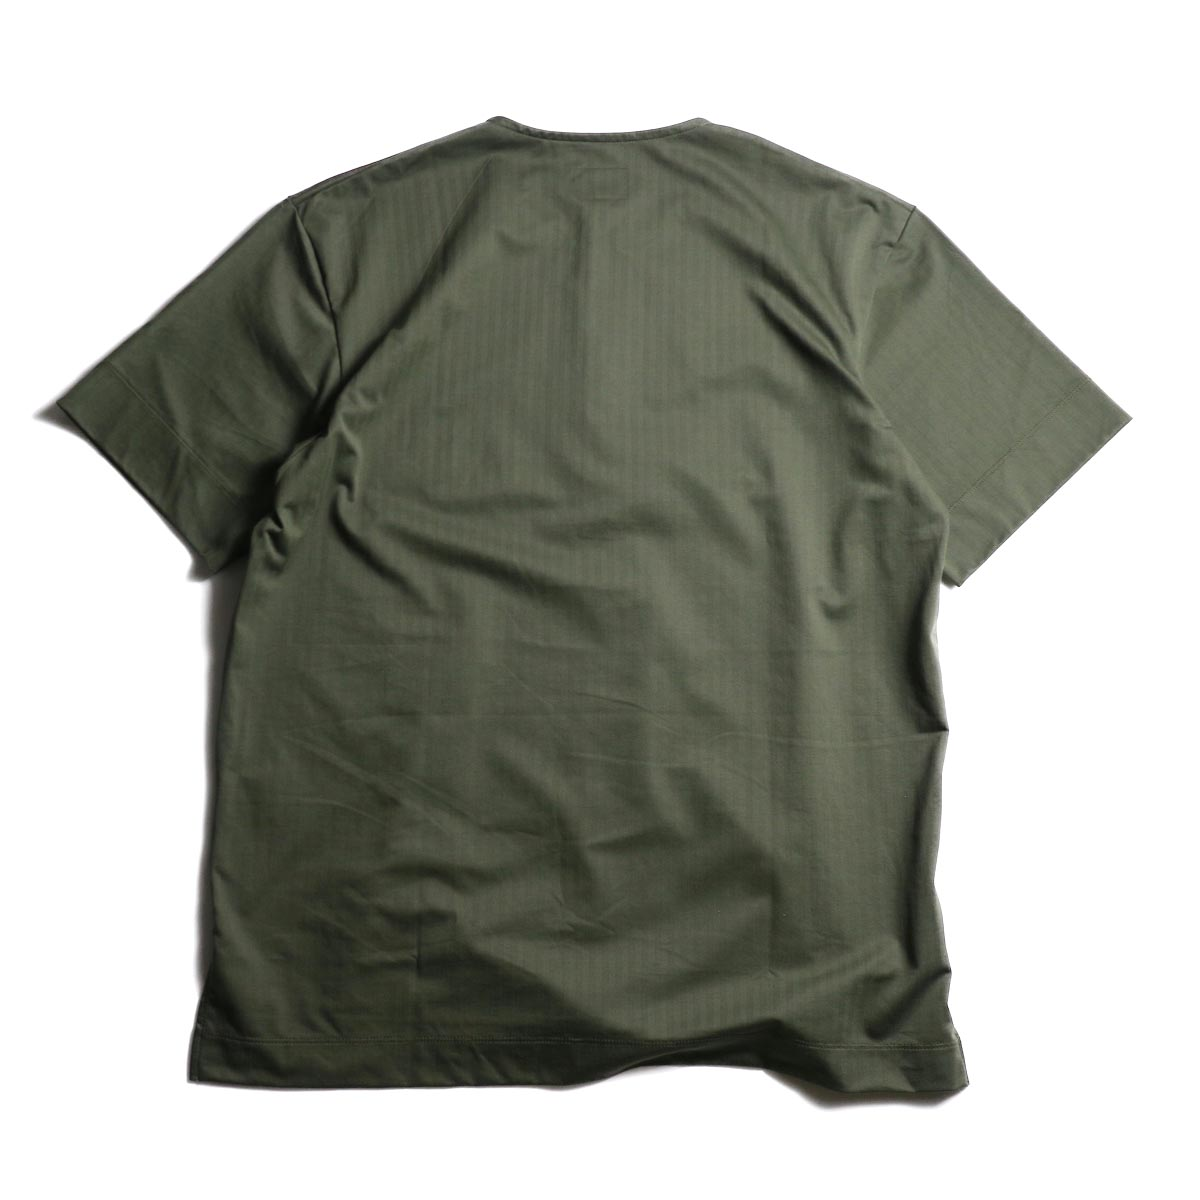 CURLY / SALFORD 3B SS HENLEY (Olive HB)背面